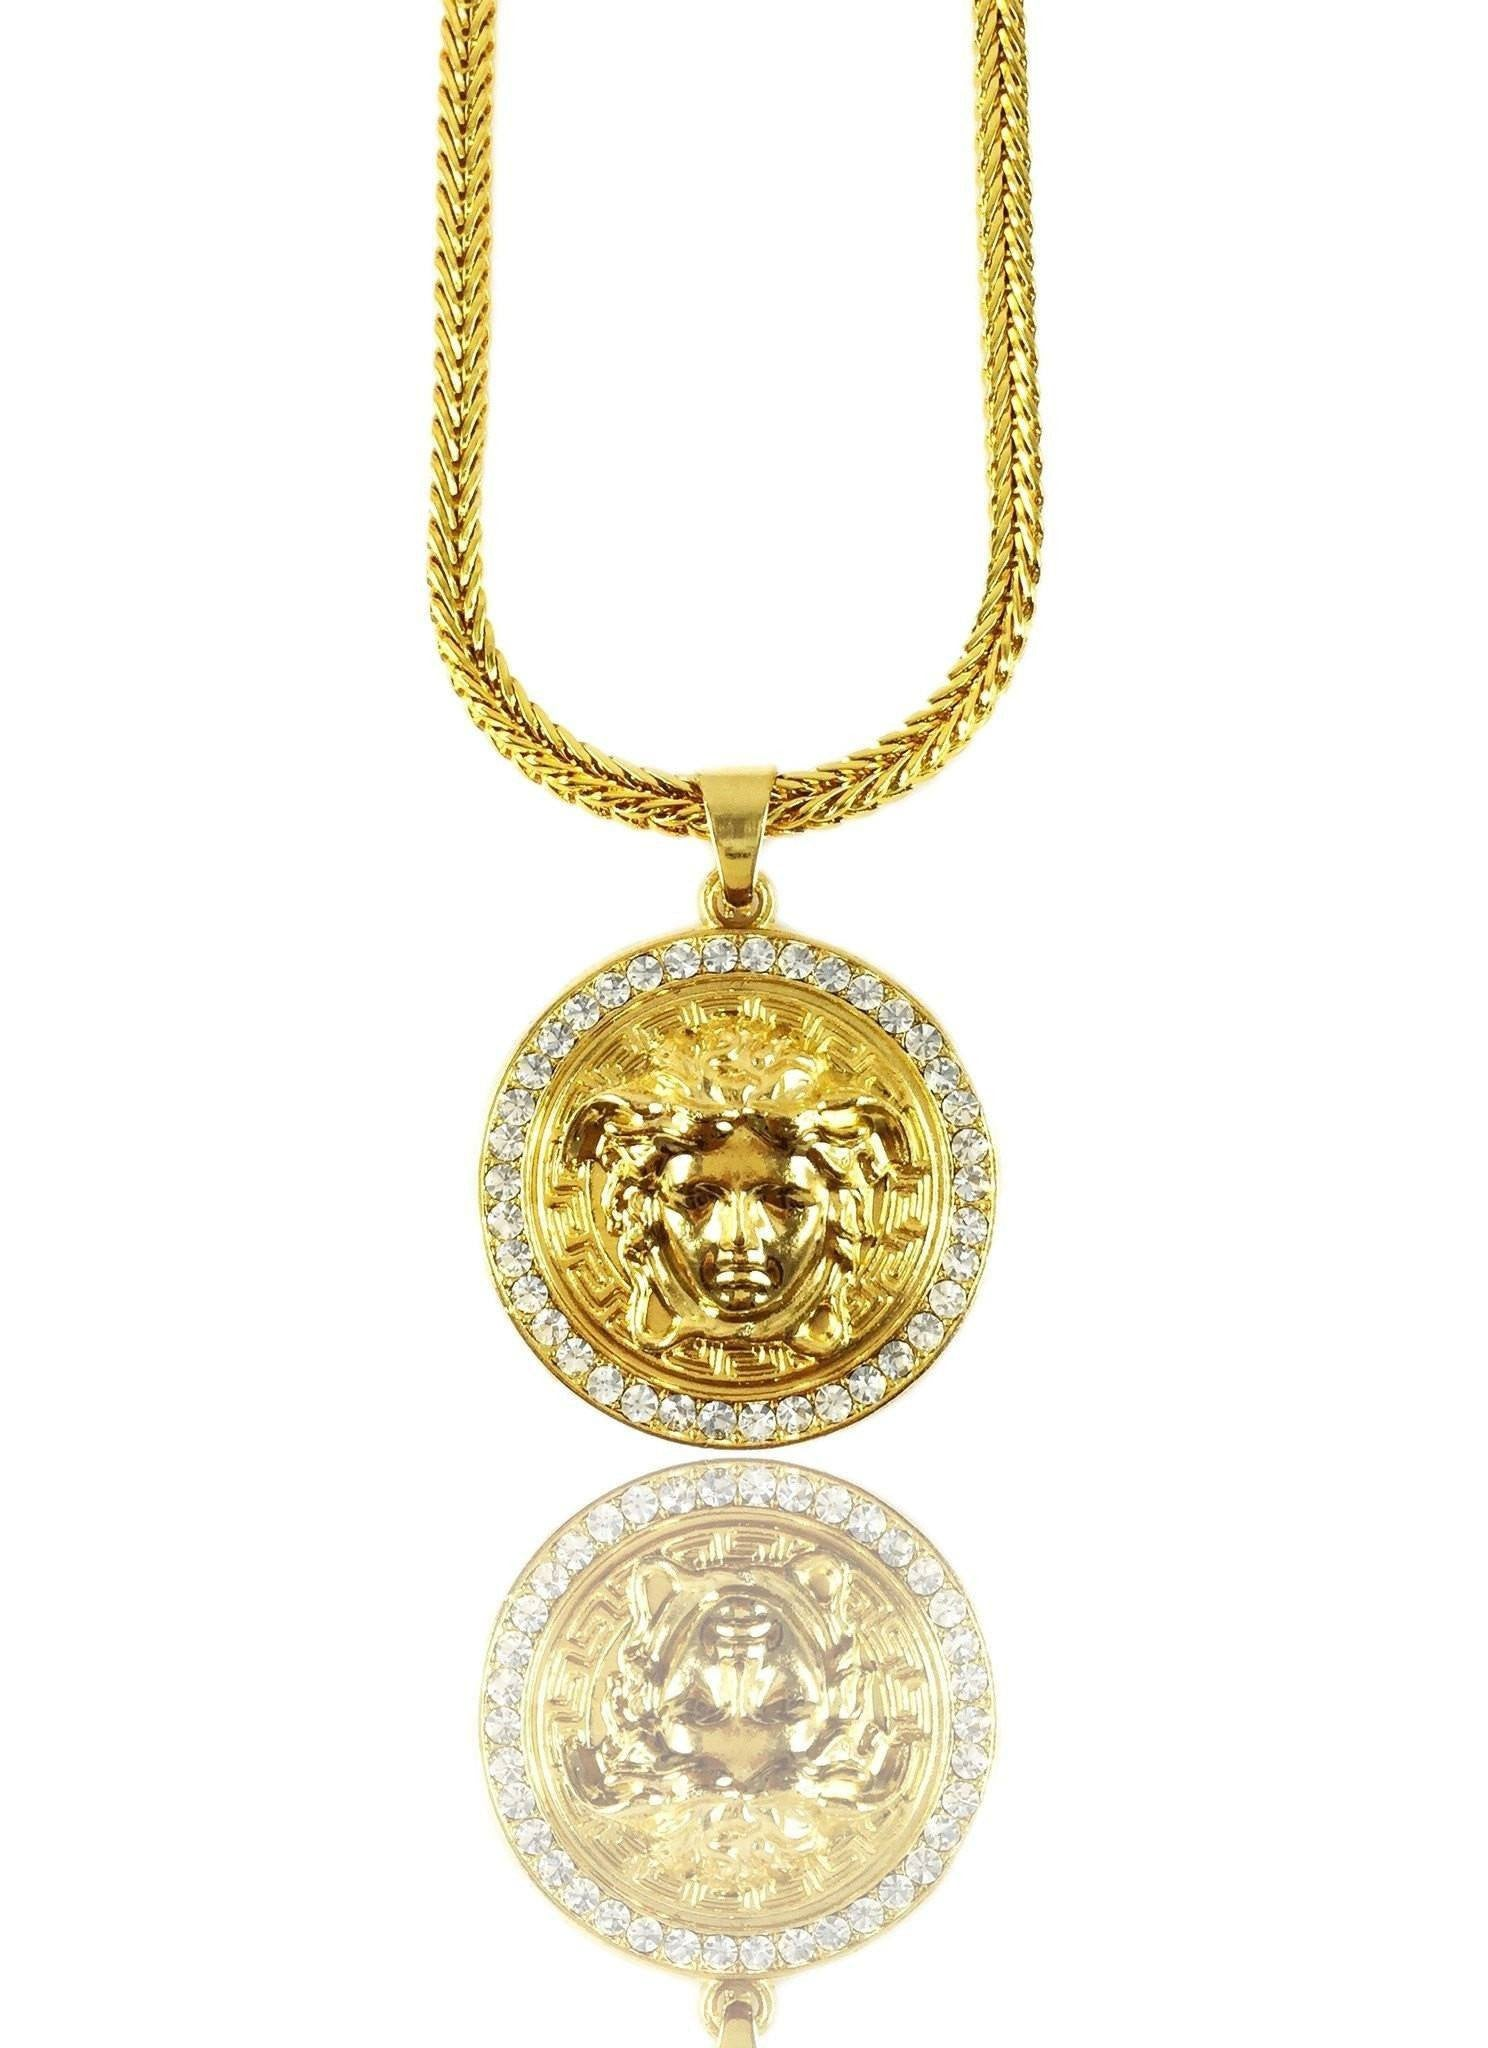 kardashian medallion necklaces gold the kim double pin from medium collection bestseller looks of chain